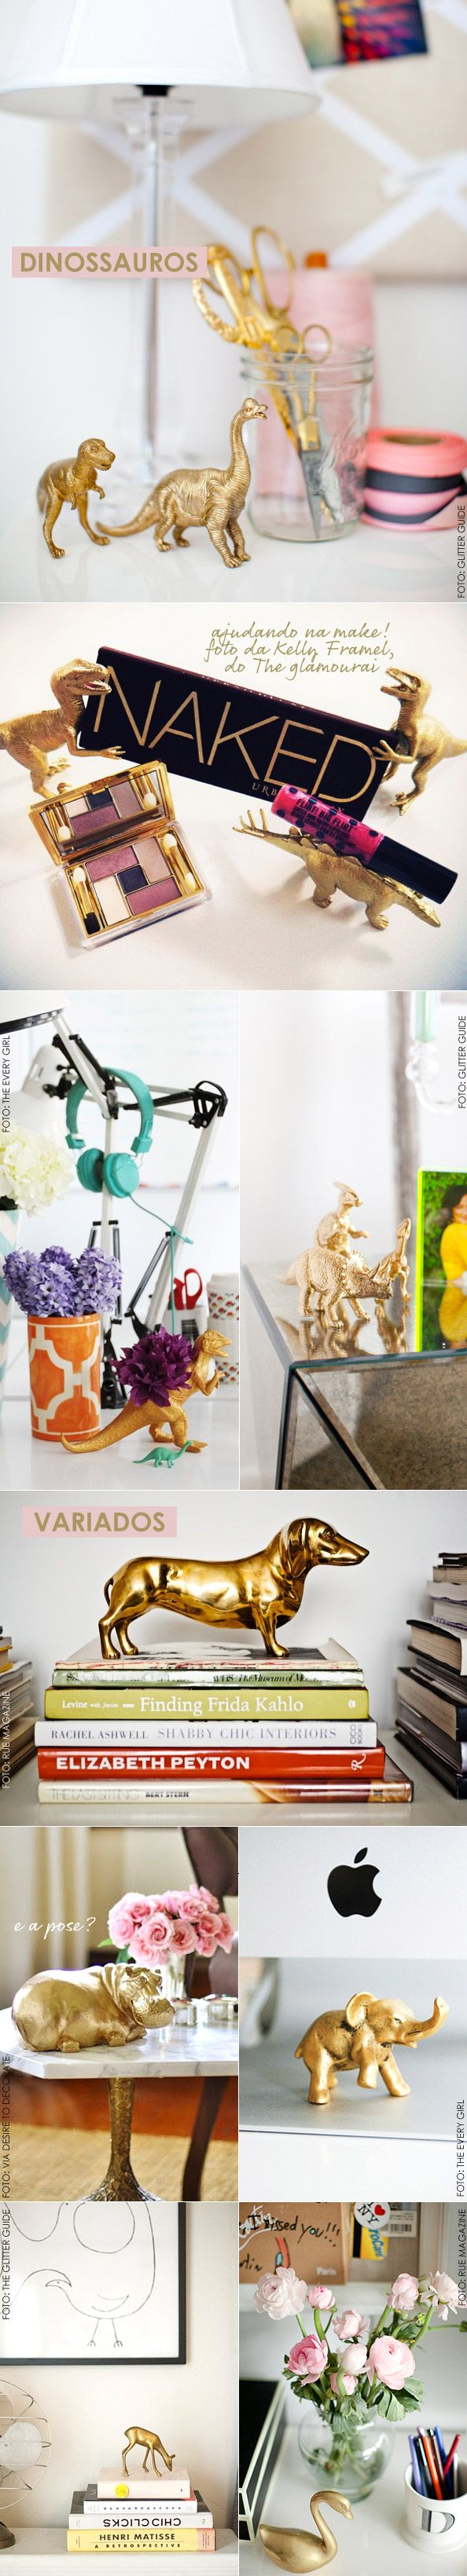 I found this cute idea and had to share it quickly because painting wooden, ceramic and plastic animals has…